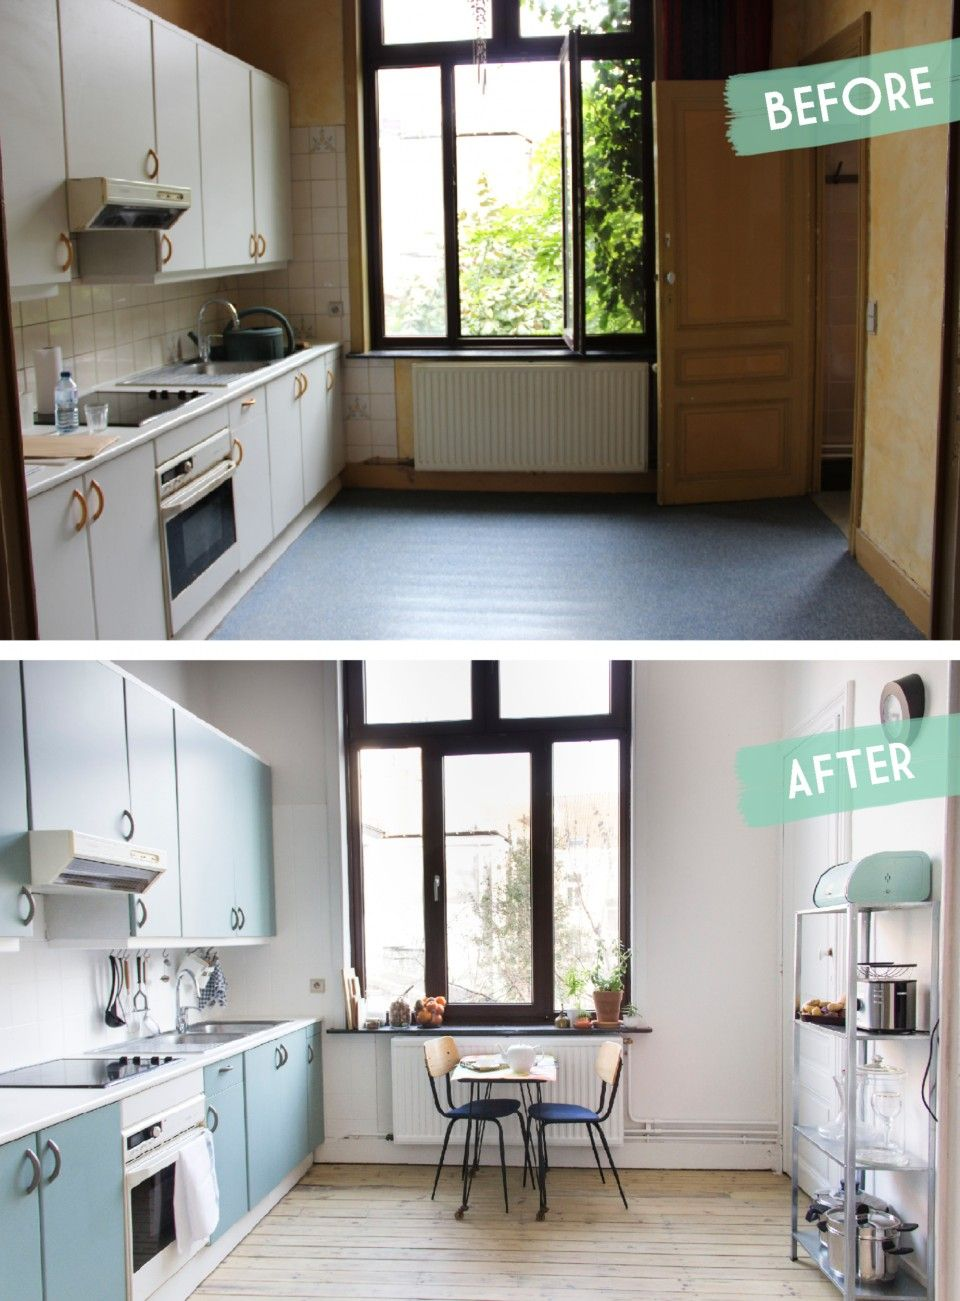 Kitchen Makeover Before After Une Cuisine Avant